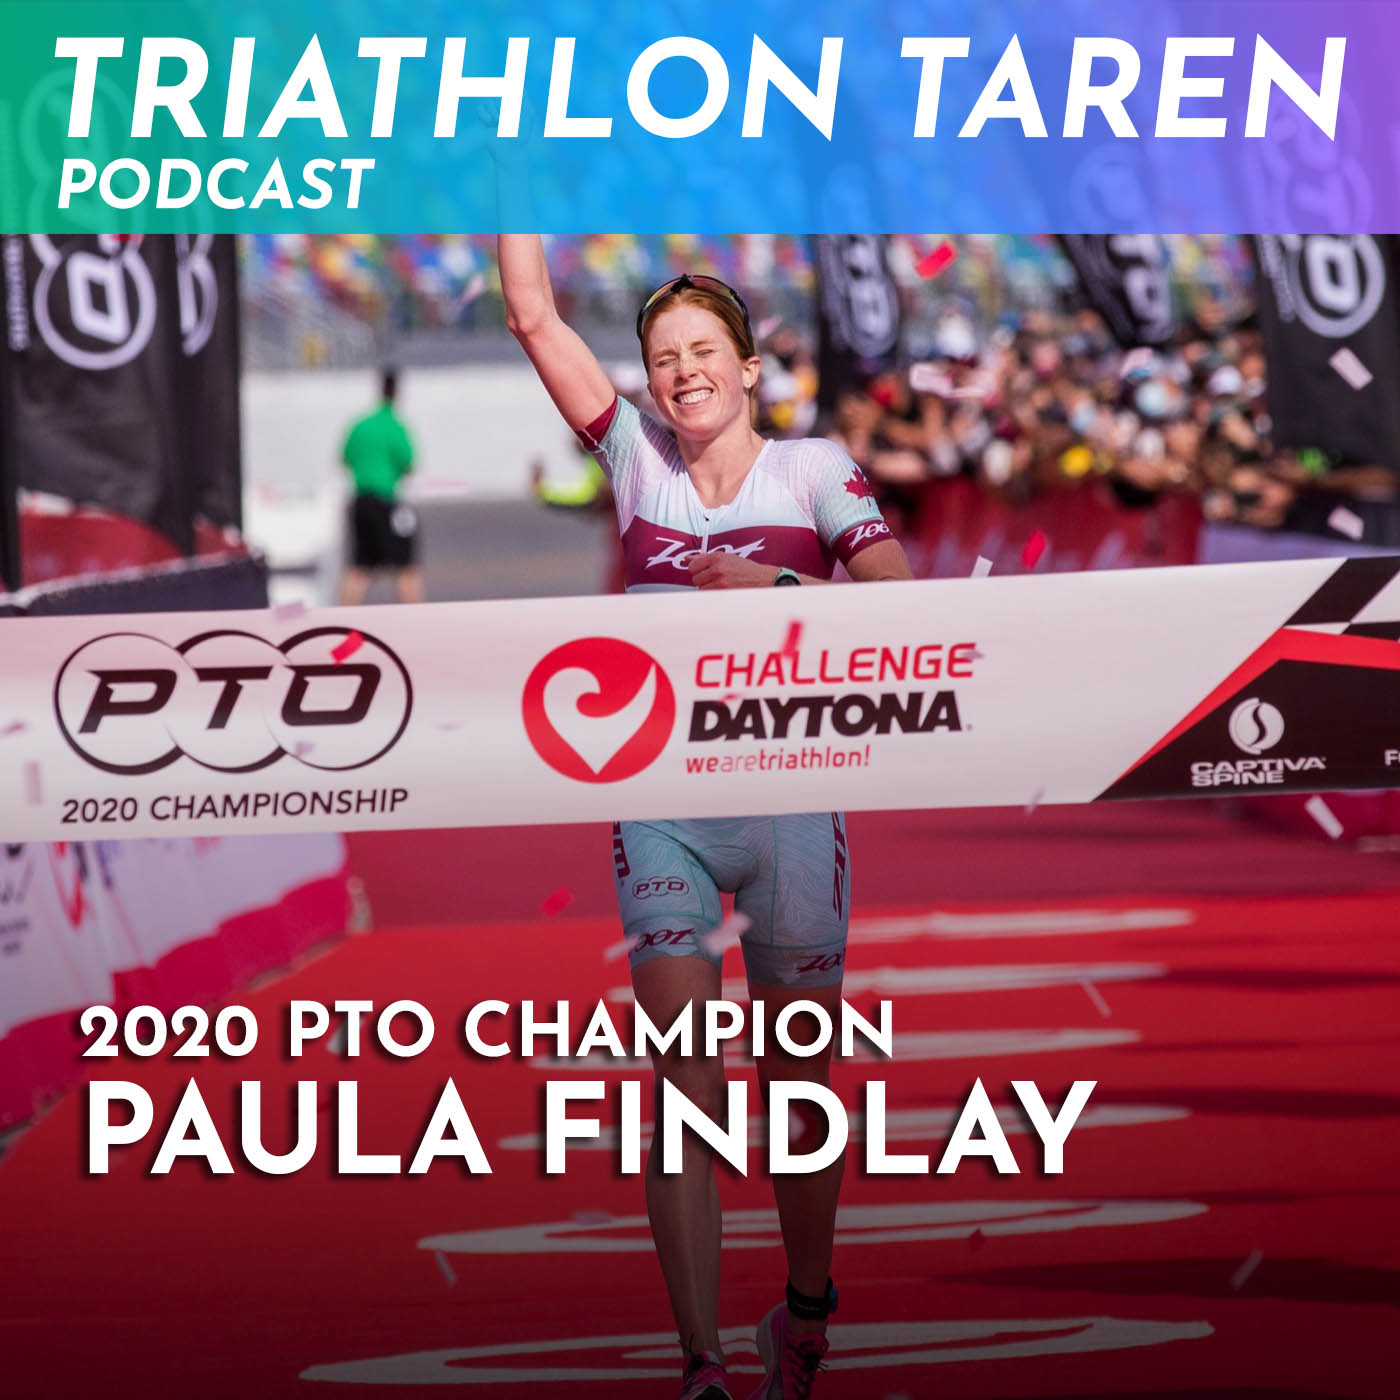 Paula Findlay | Your 2020 PTO Champion!